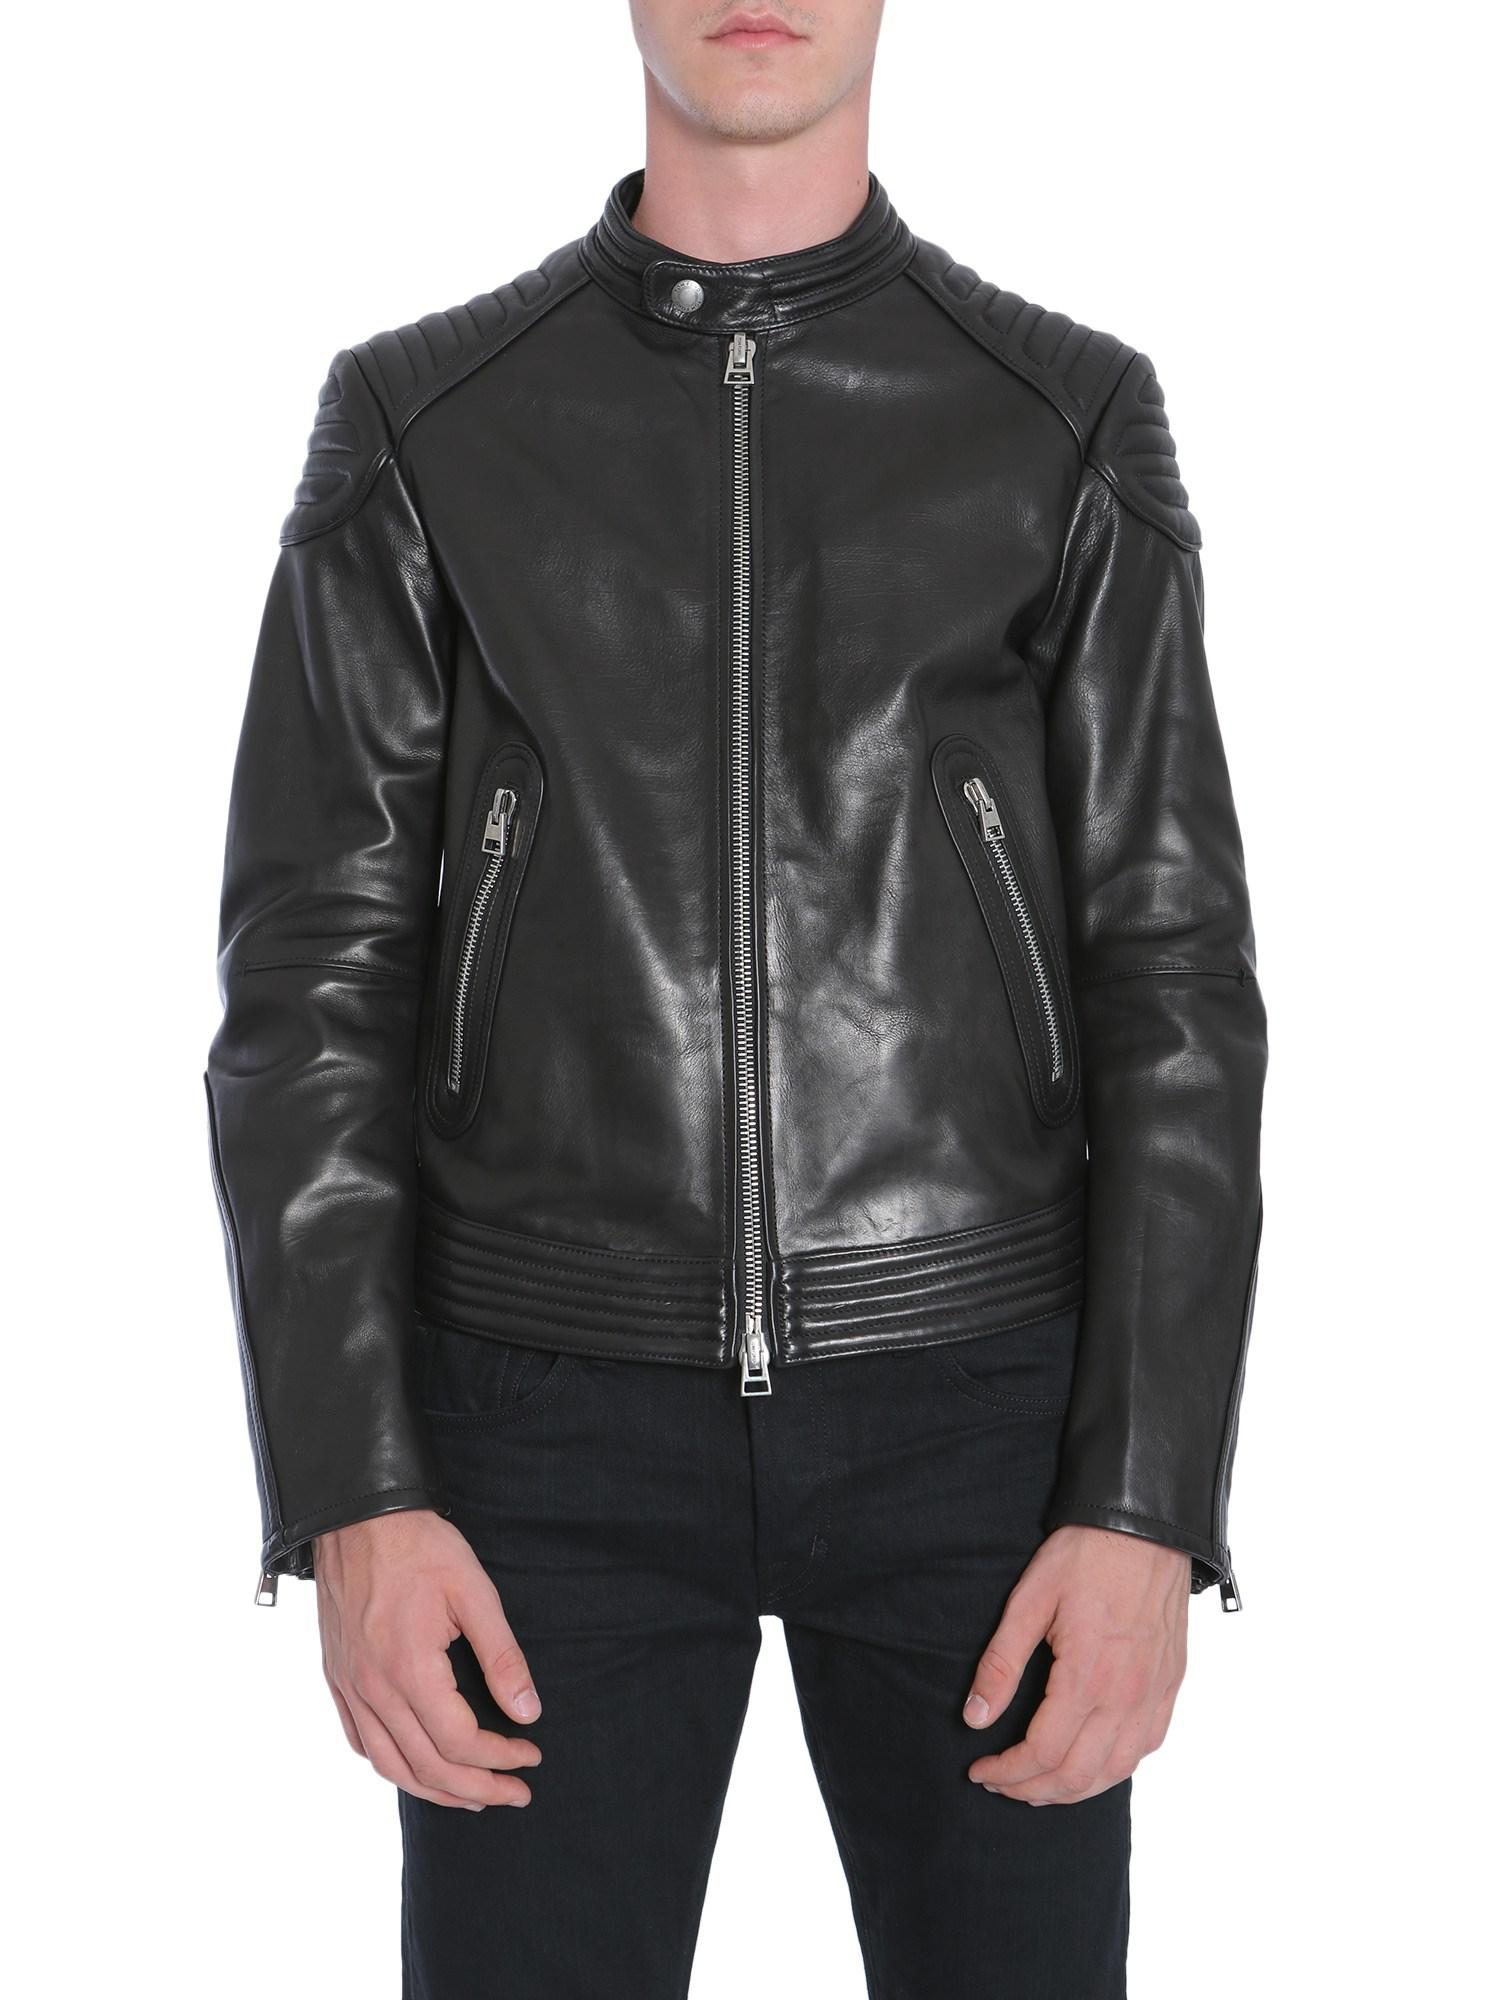 lyst tom ford leather biker jacket in black for men. Black Bedroom Furniture Sets. Home Design Ideas